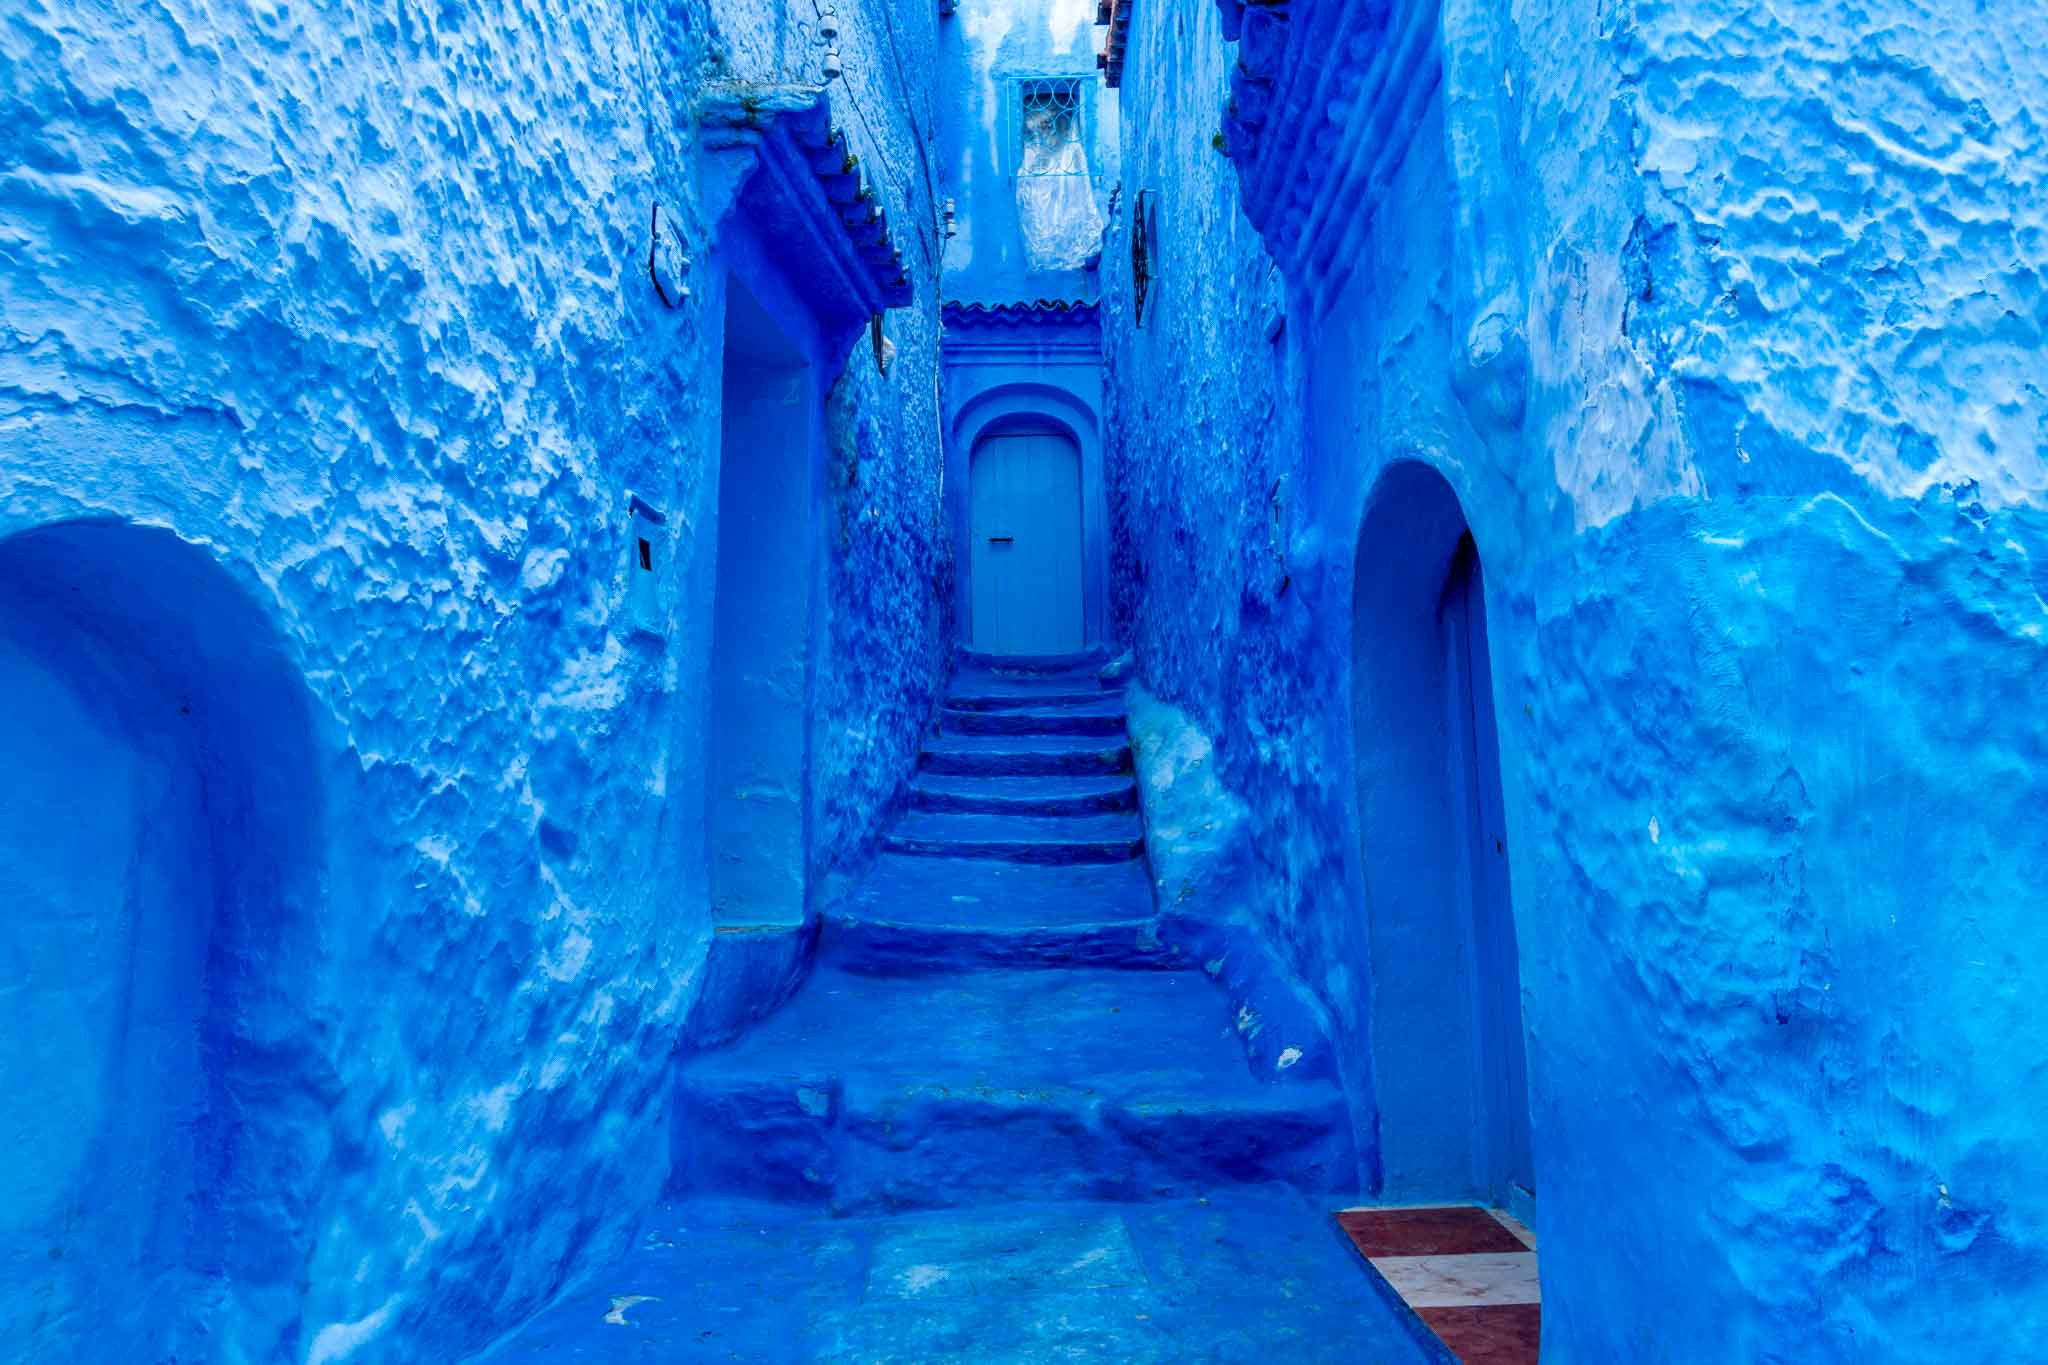 Doorway in the blue city Chefchaouen Morocco